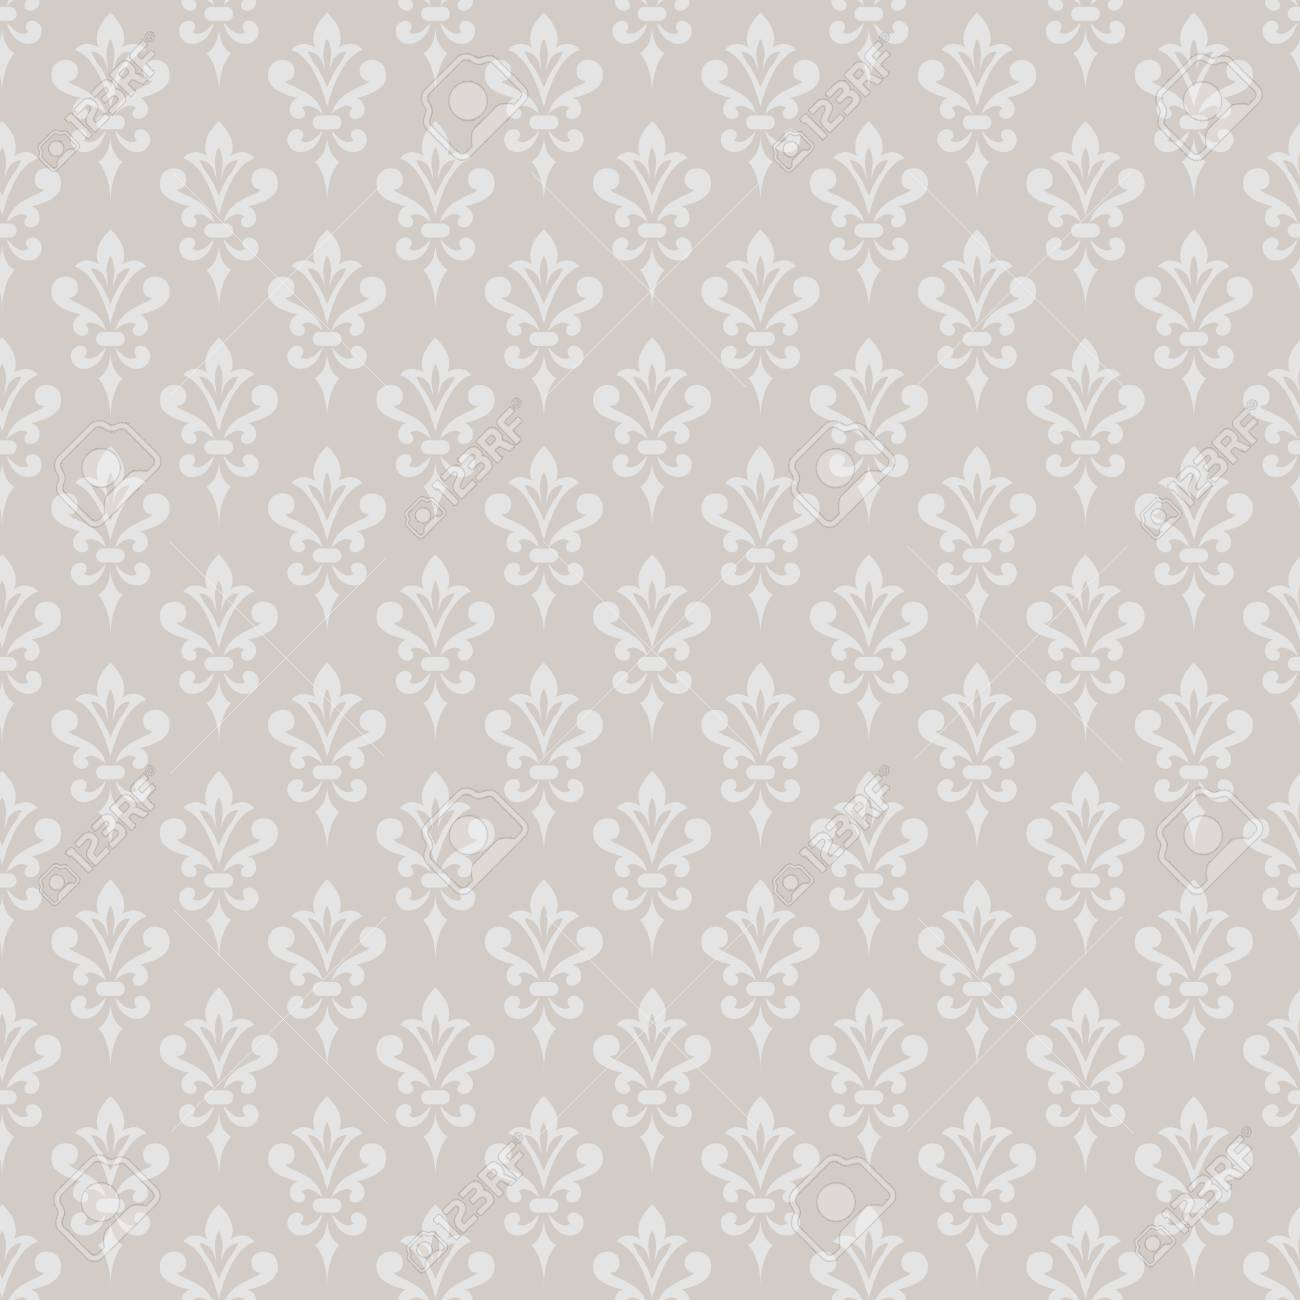 Damask Wallpaper Elegant Background In Victorian Style Vintage Ornament Monochrome Colors